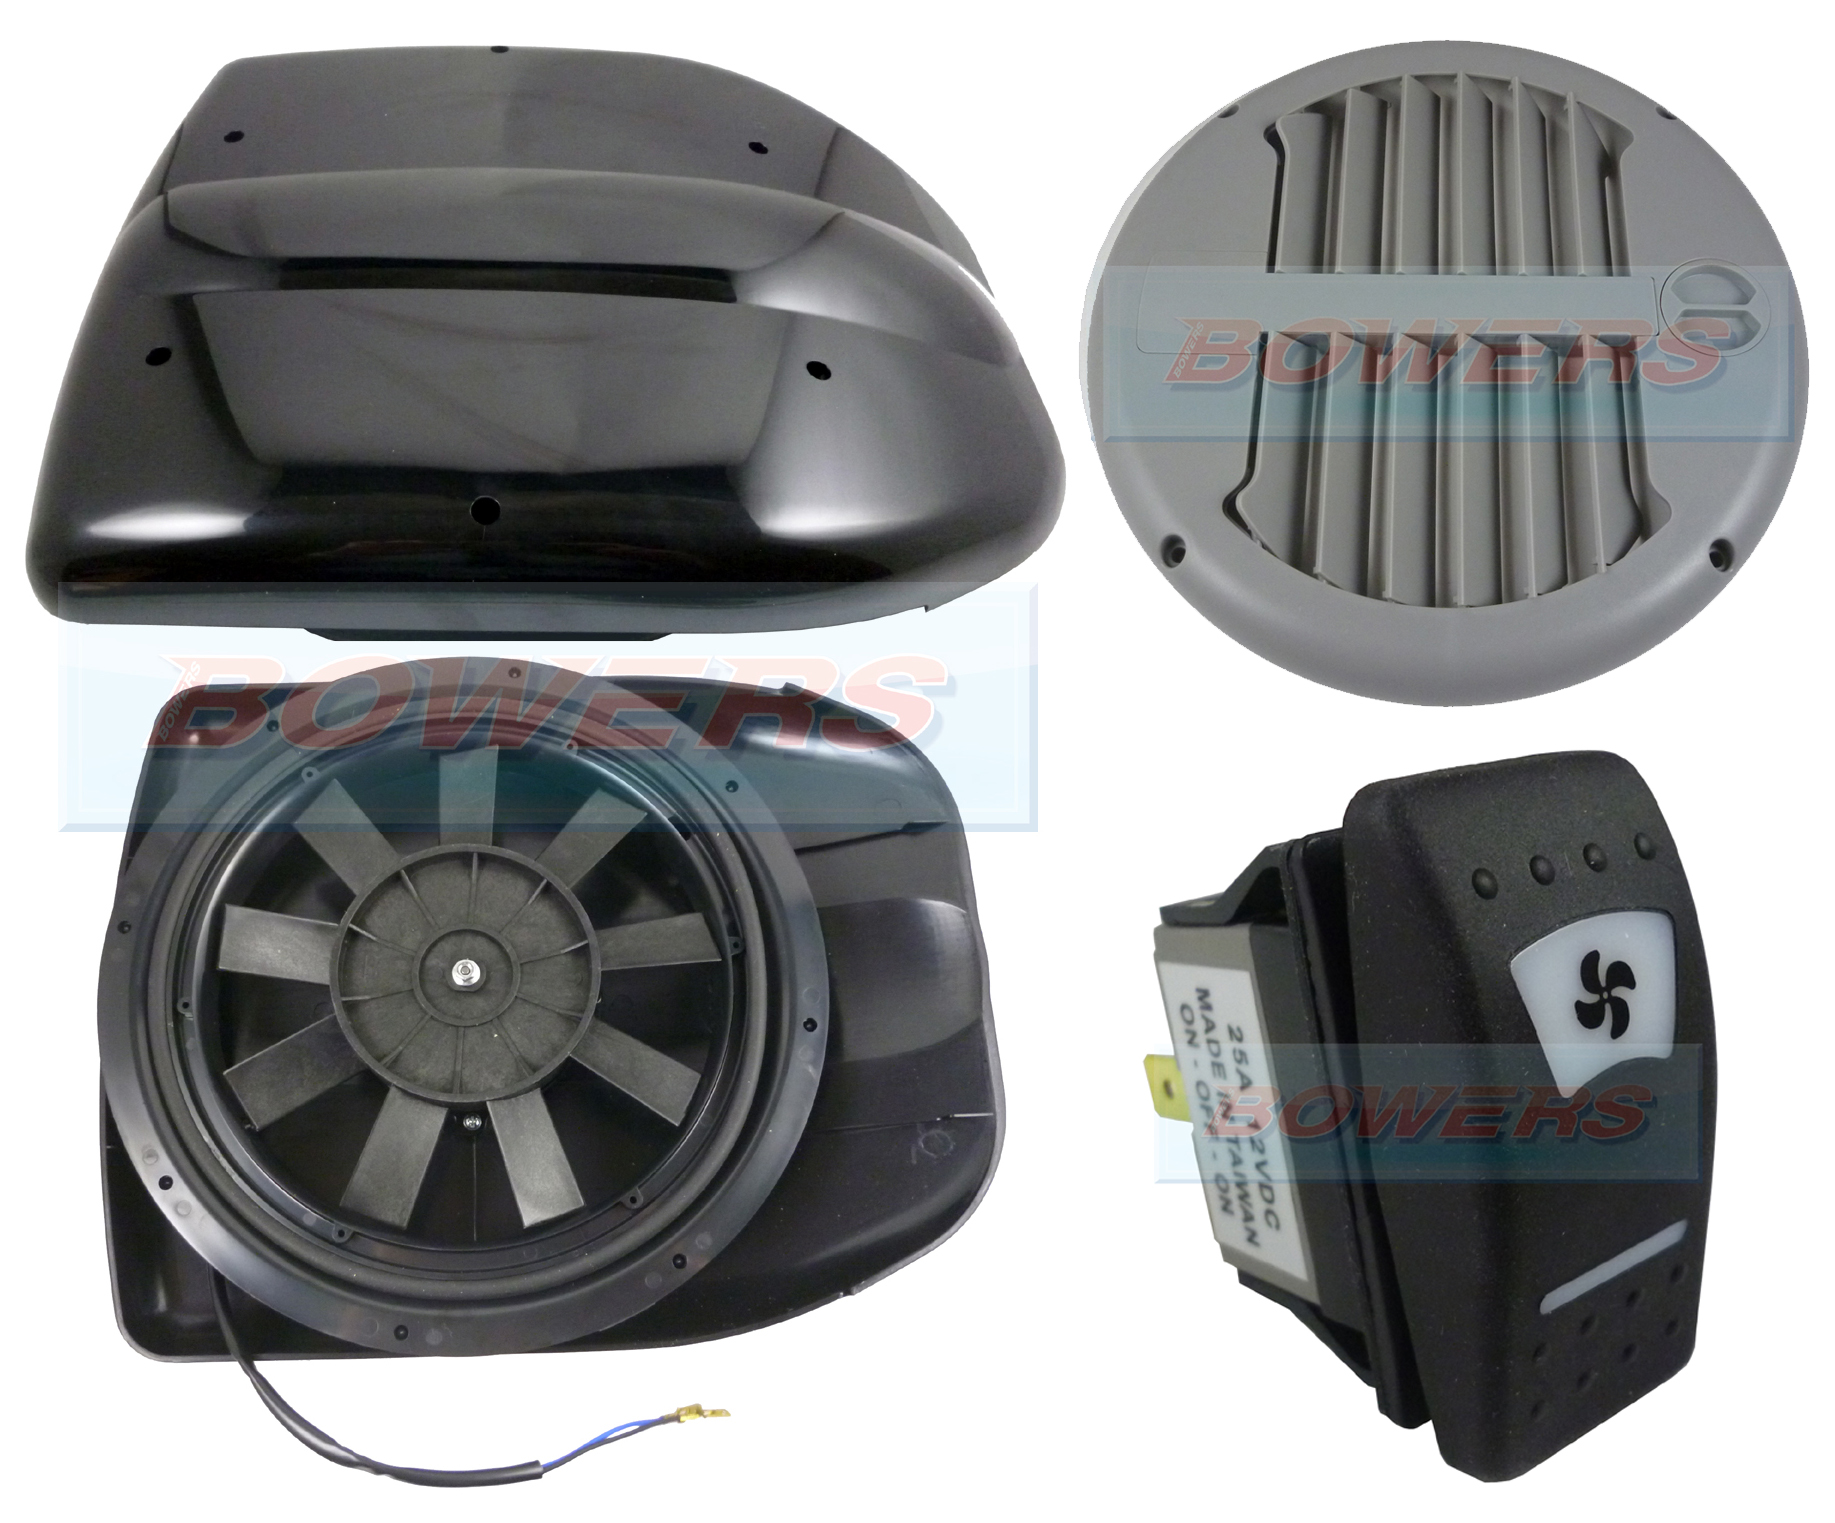 Black 12v Low Profile Motorised Turbo Roof Air Vent Extractor Fan Gre